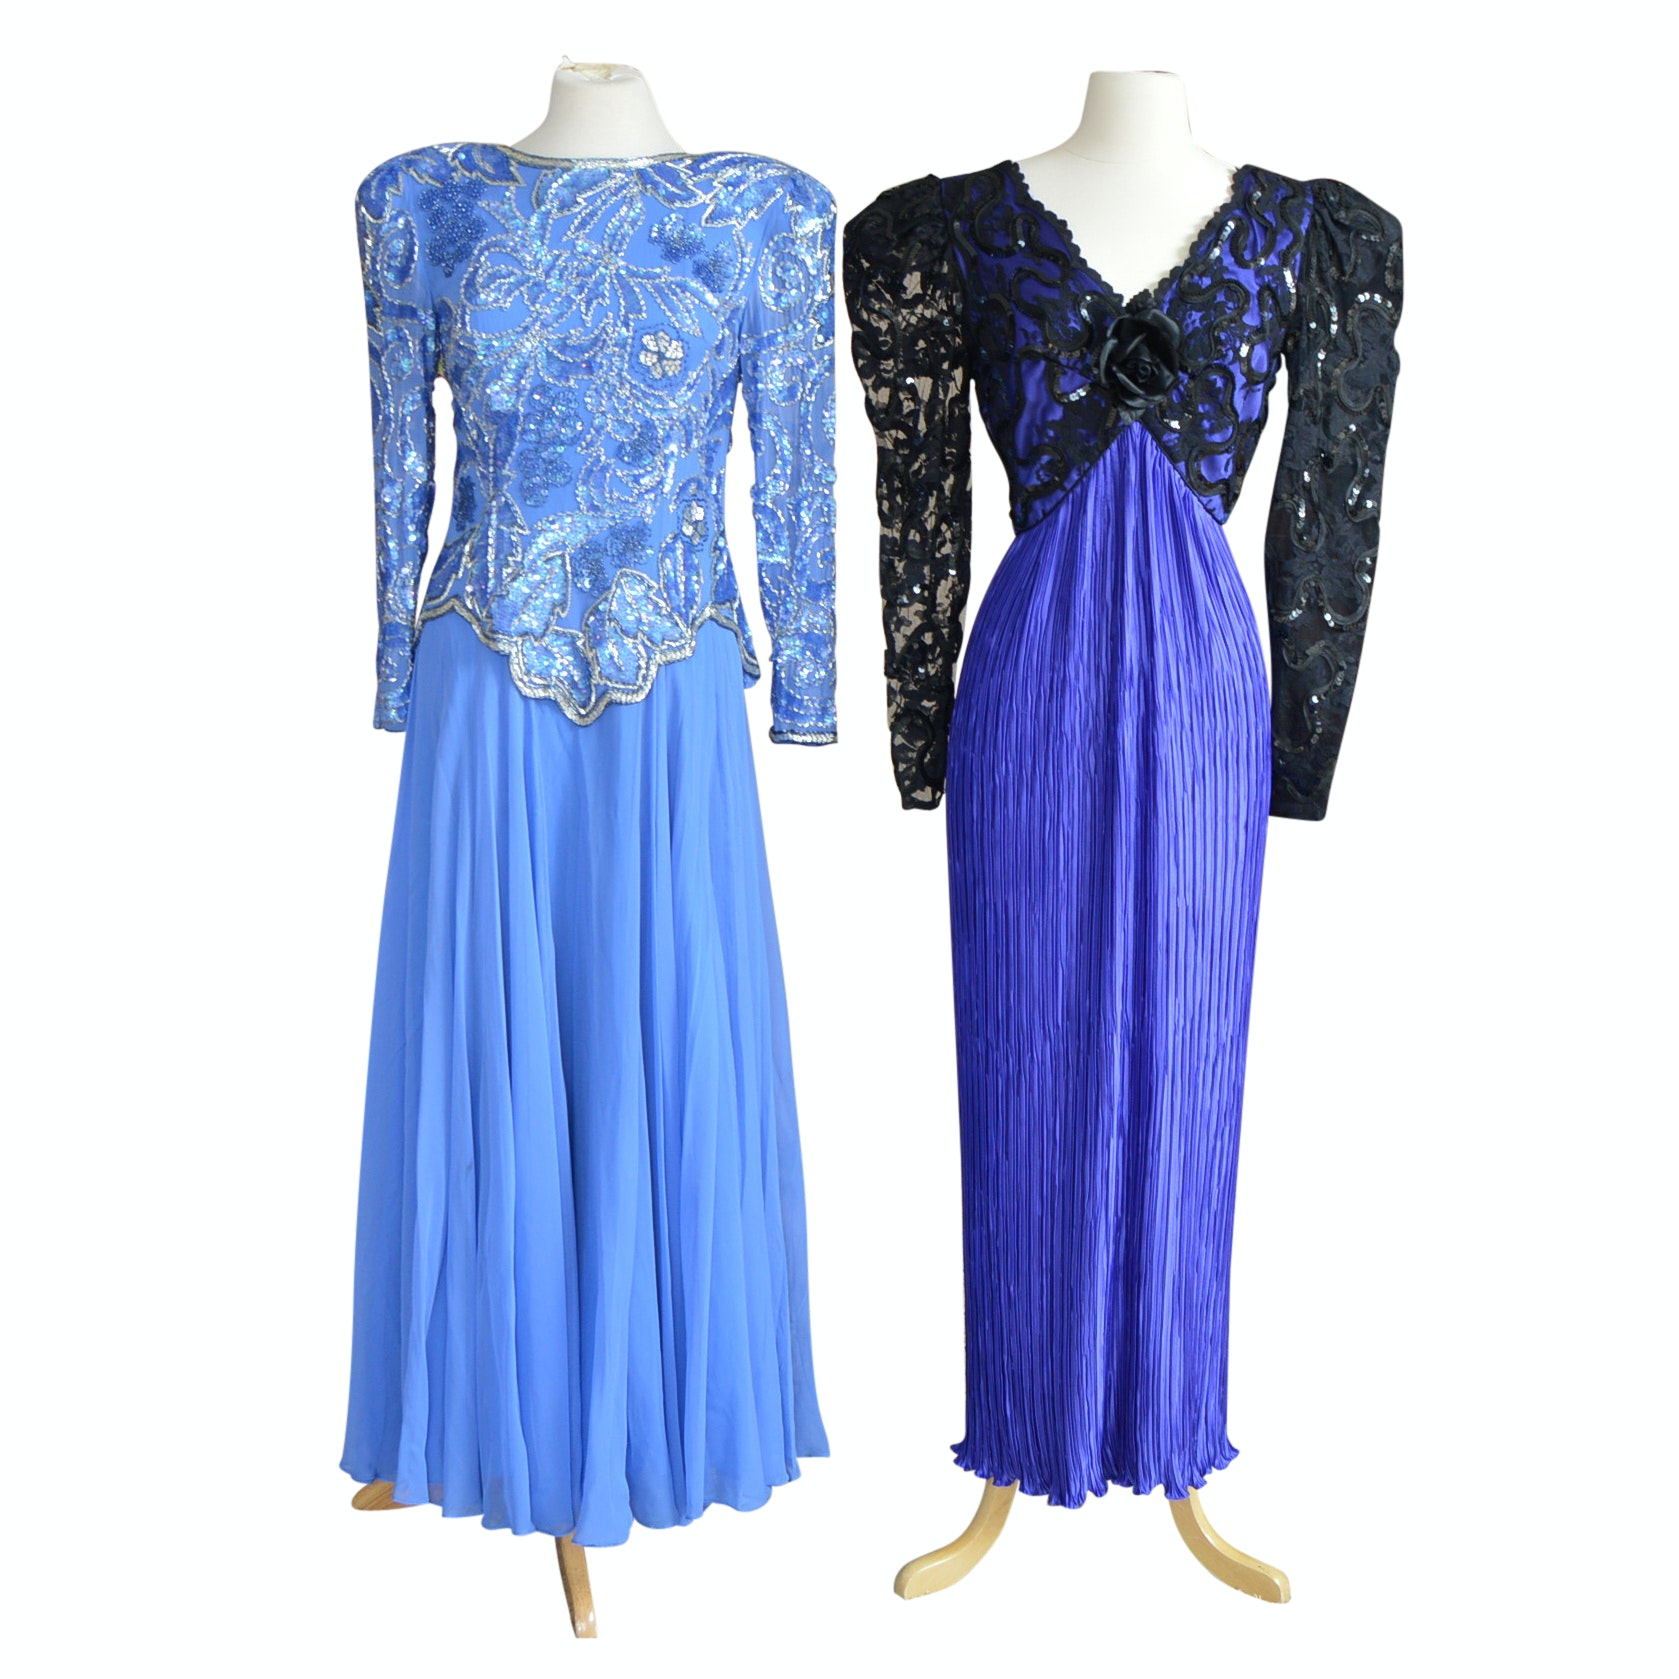 Women's Vintage Lilli Rubin and Oleg Cassini Formal Gowns